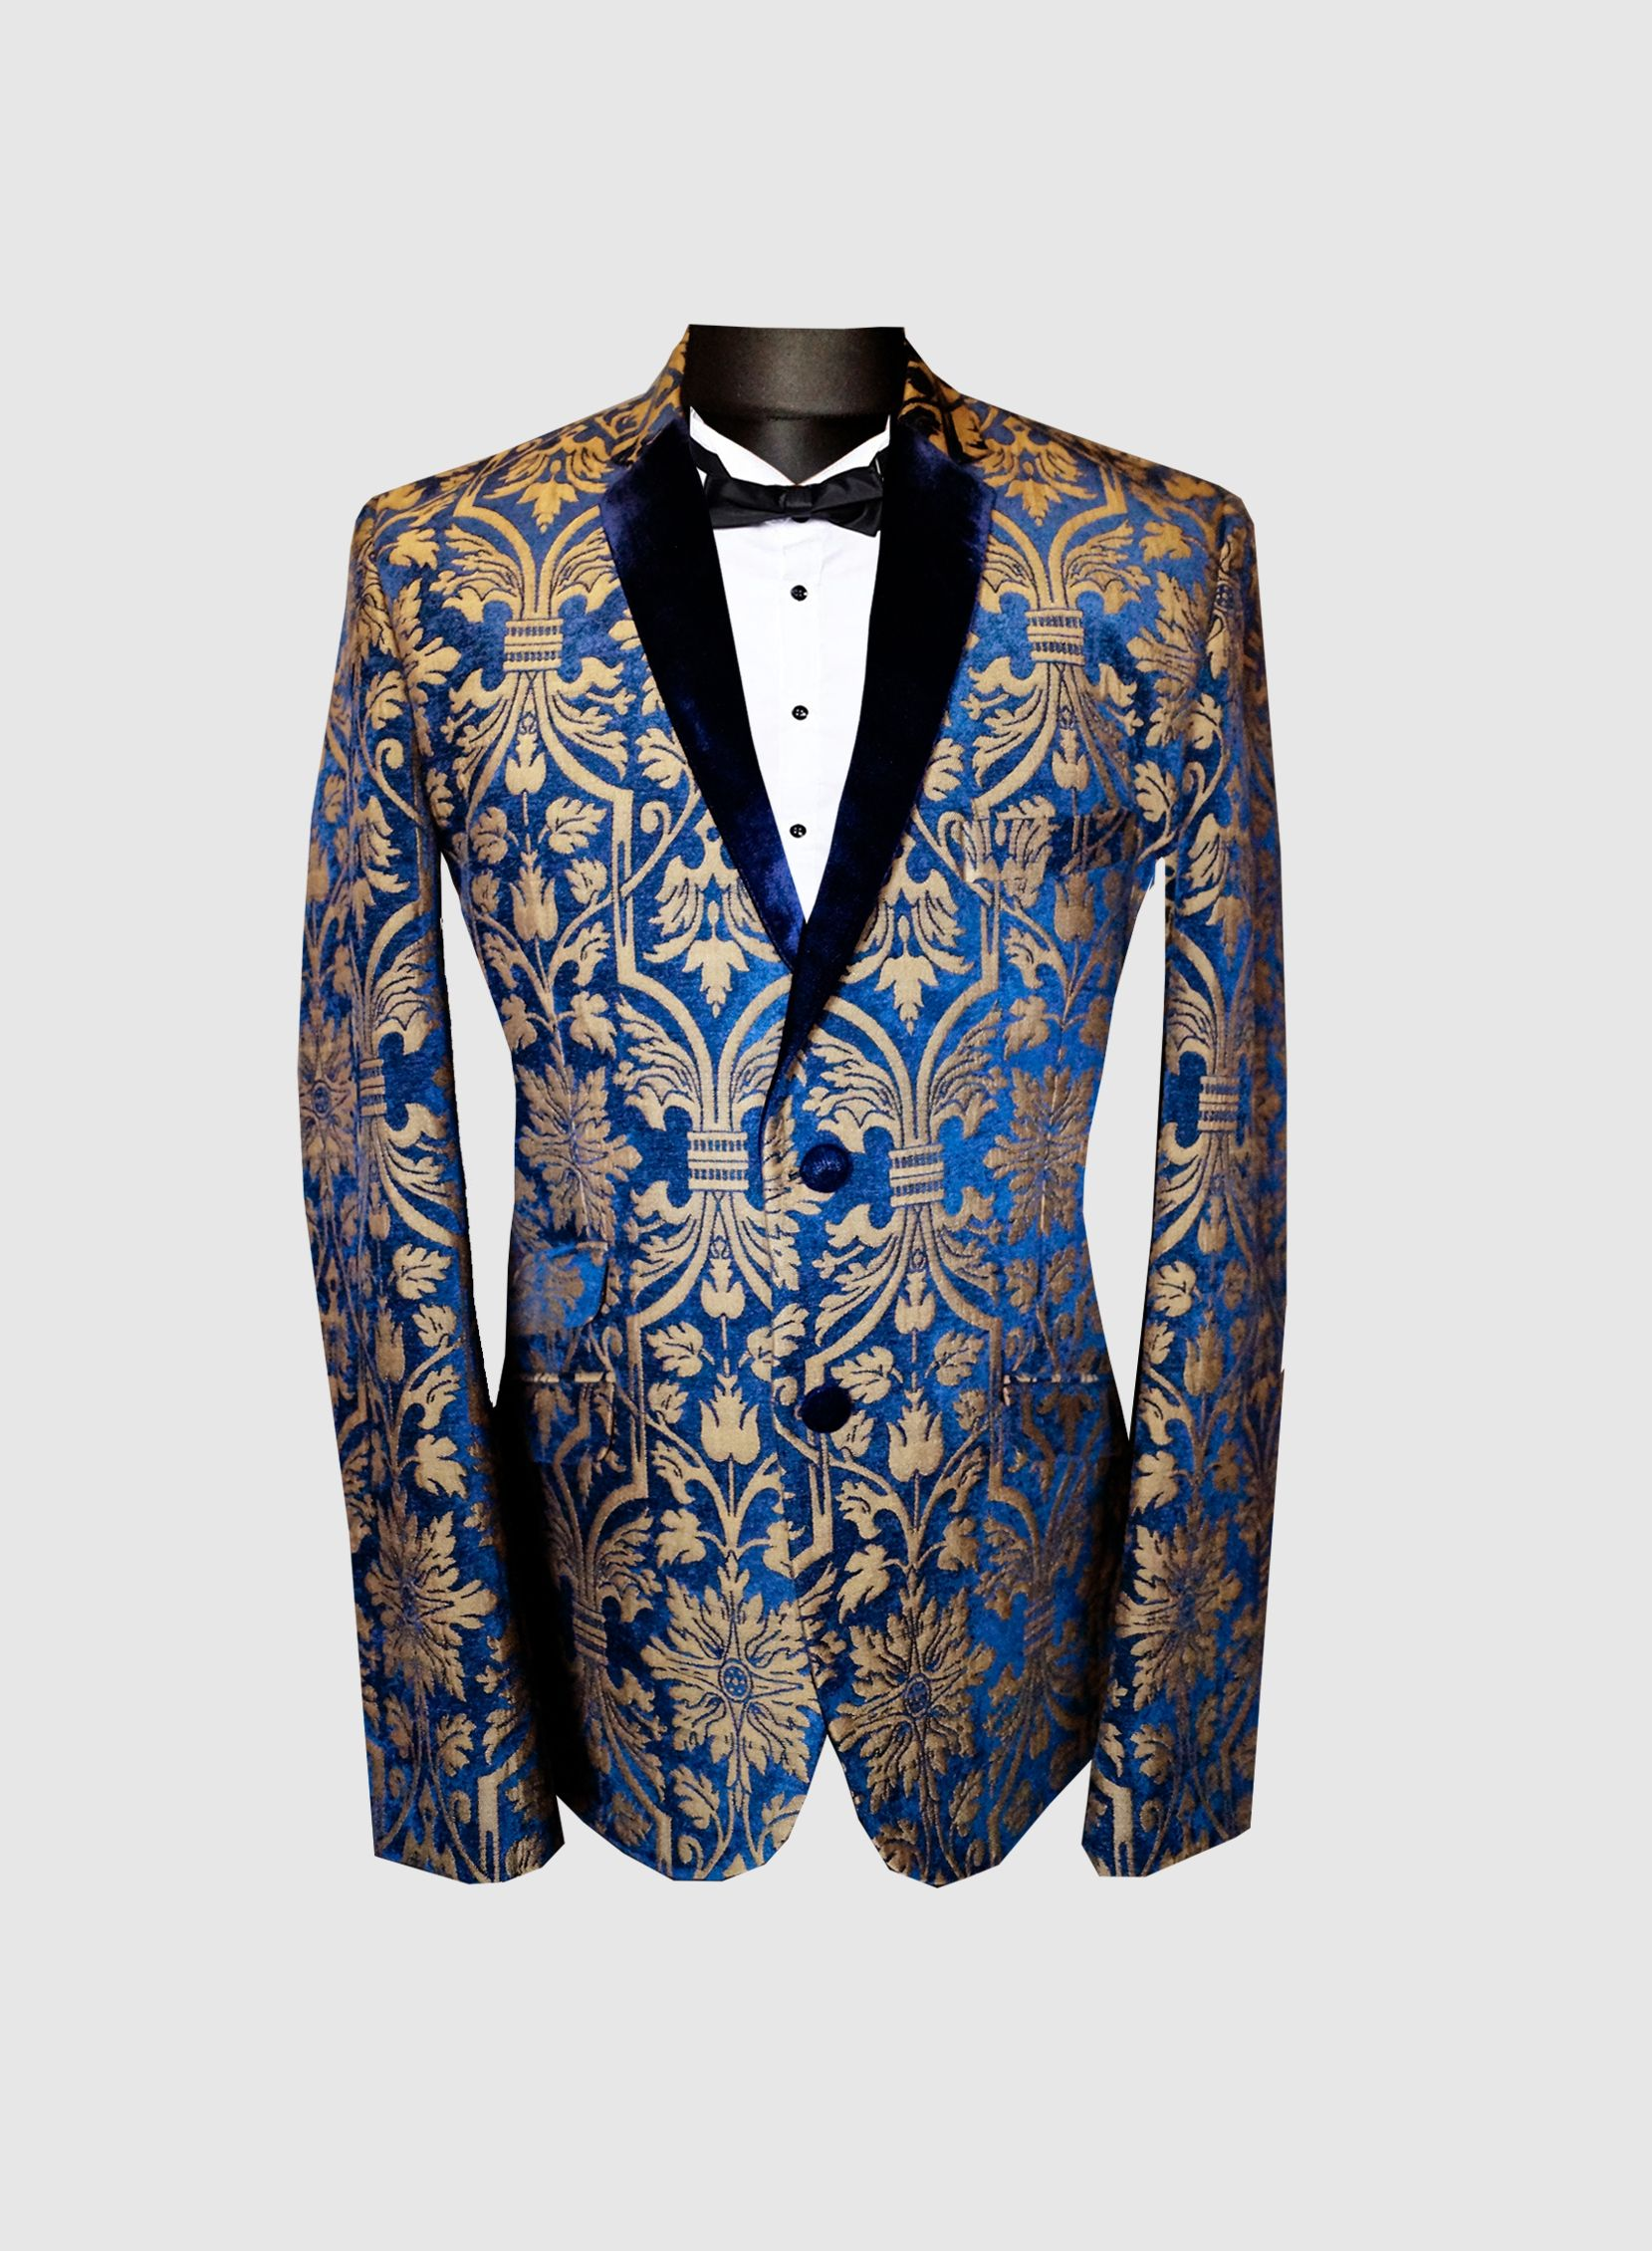 Suits & Blazers Blazers 2019 Newest Arrival Gold Men Blazer Jacket Printed Casual Long Sleeve Notched Collar Men Coat For Party Groom Holiday